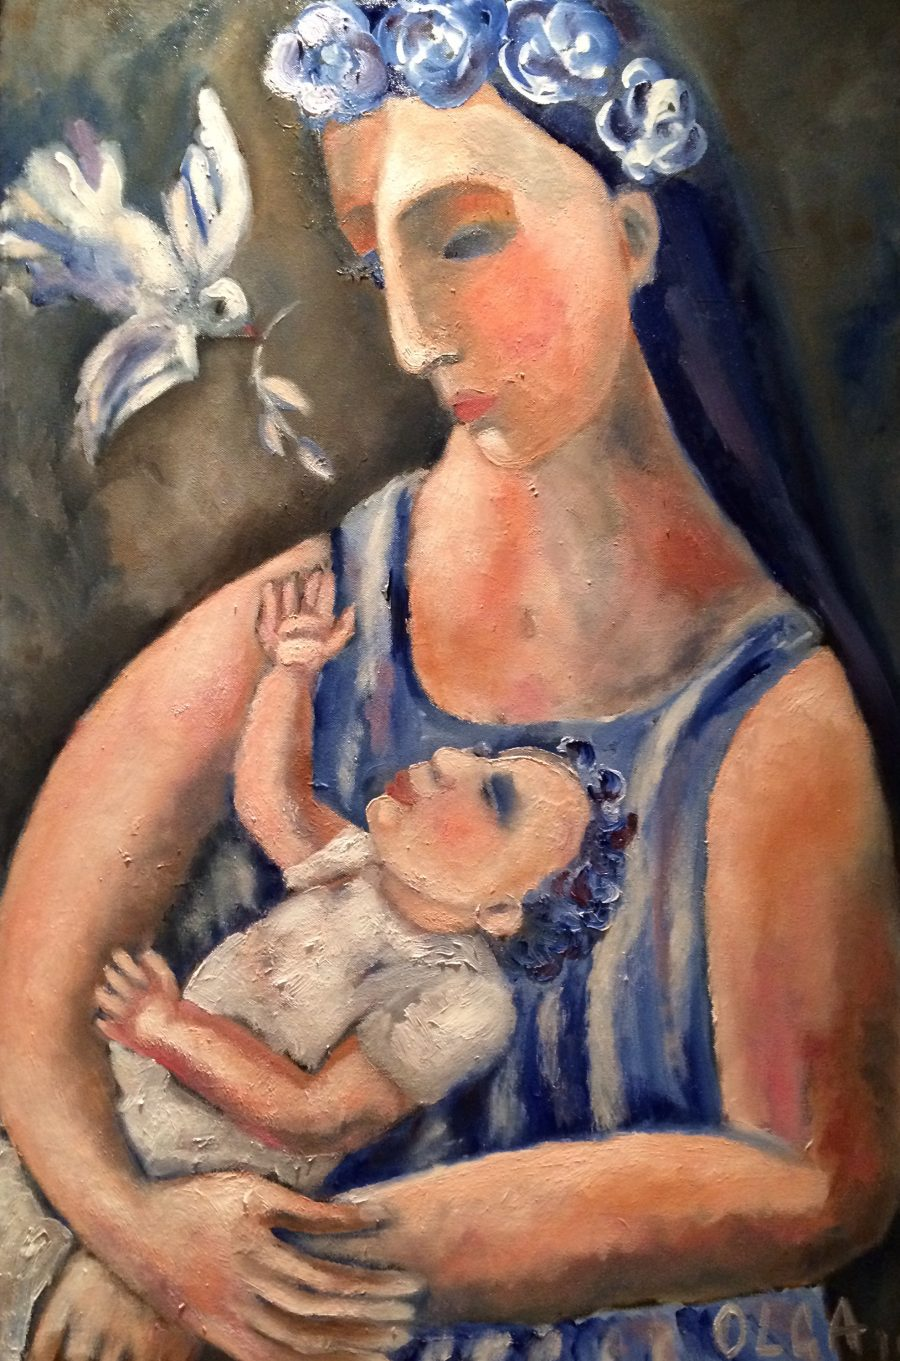 Madonna and child painting | by Olga Bakhtina